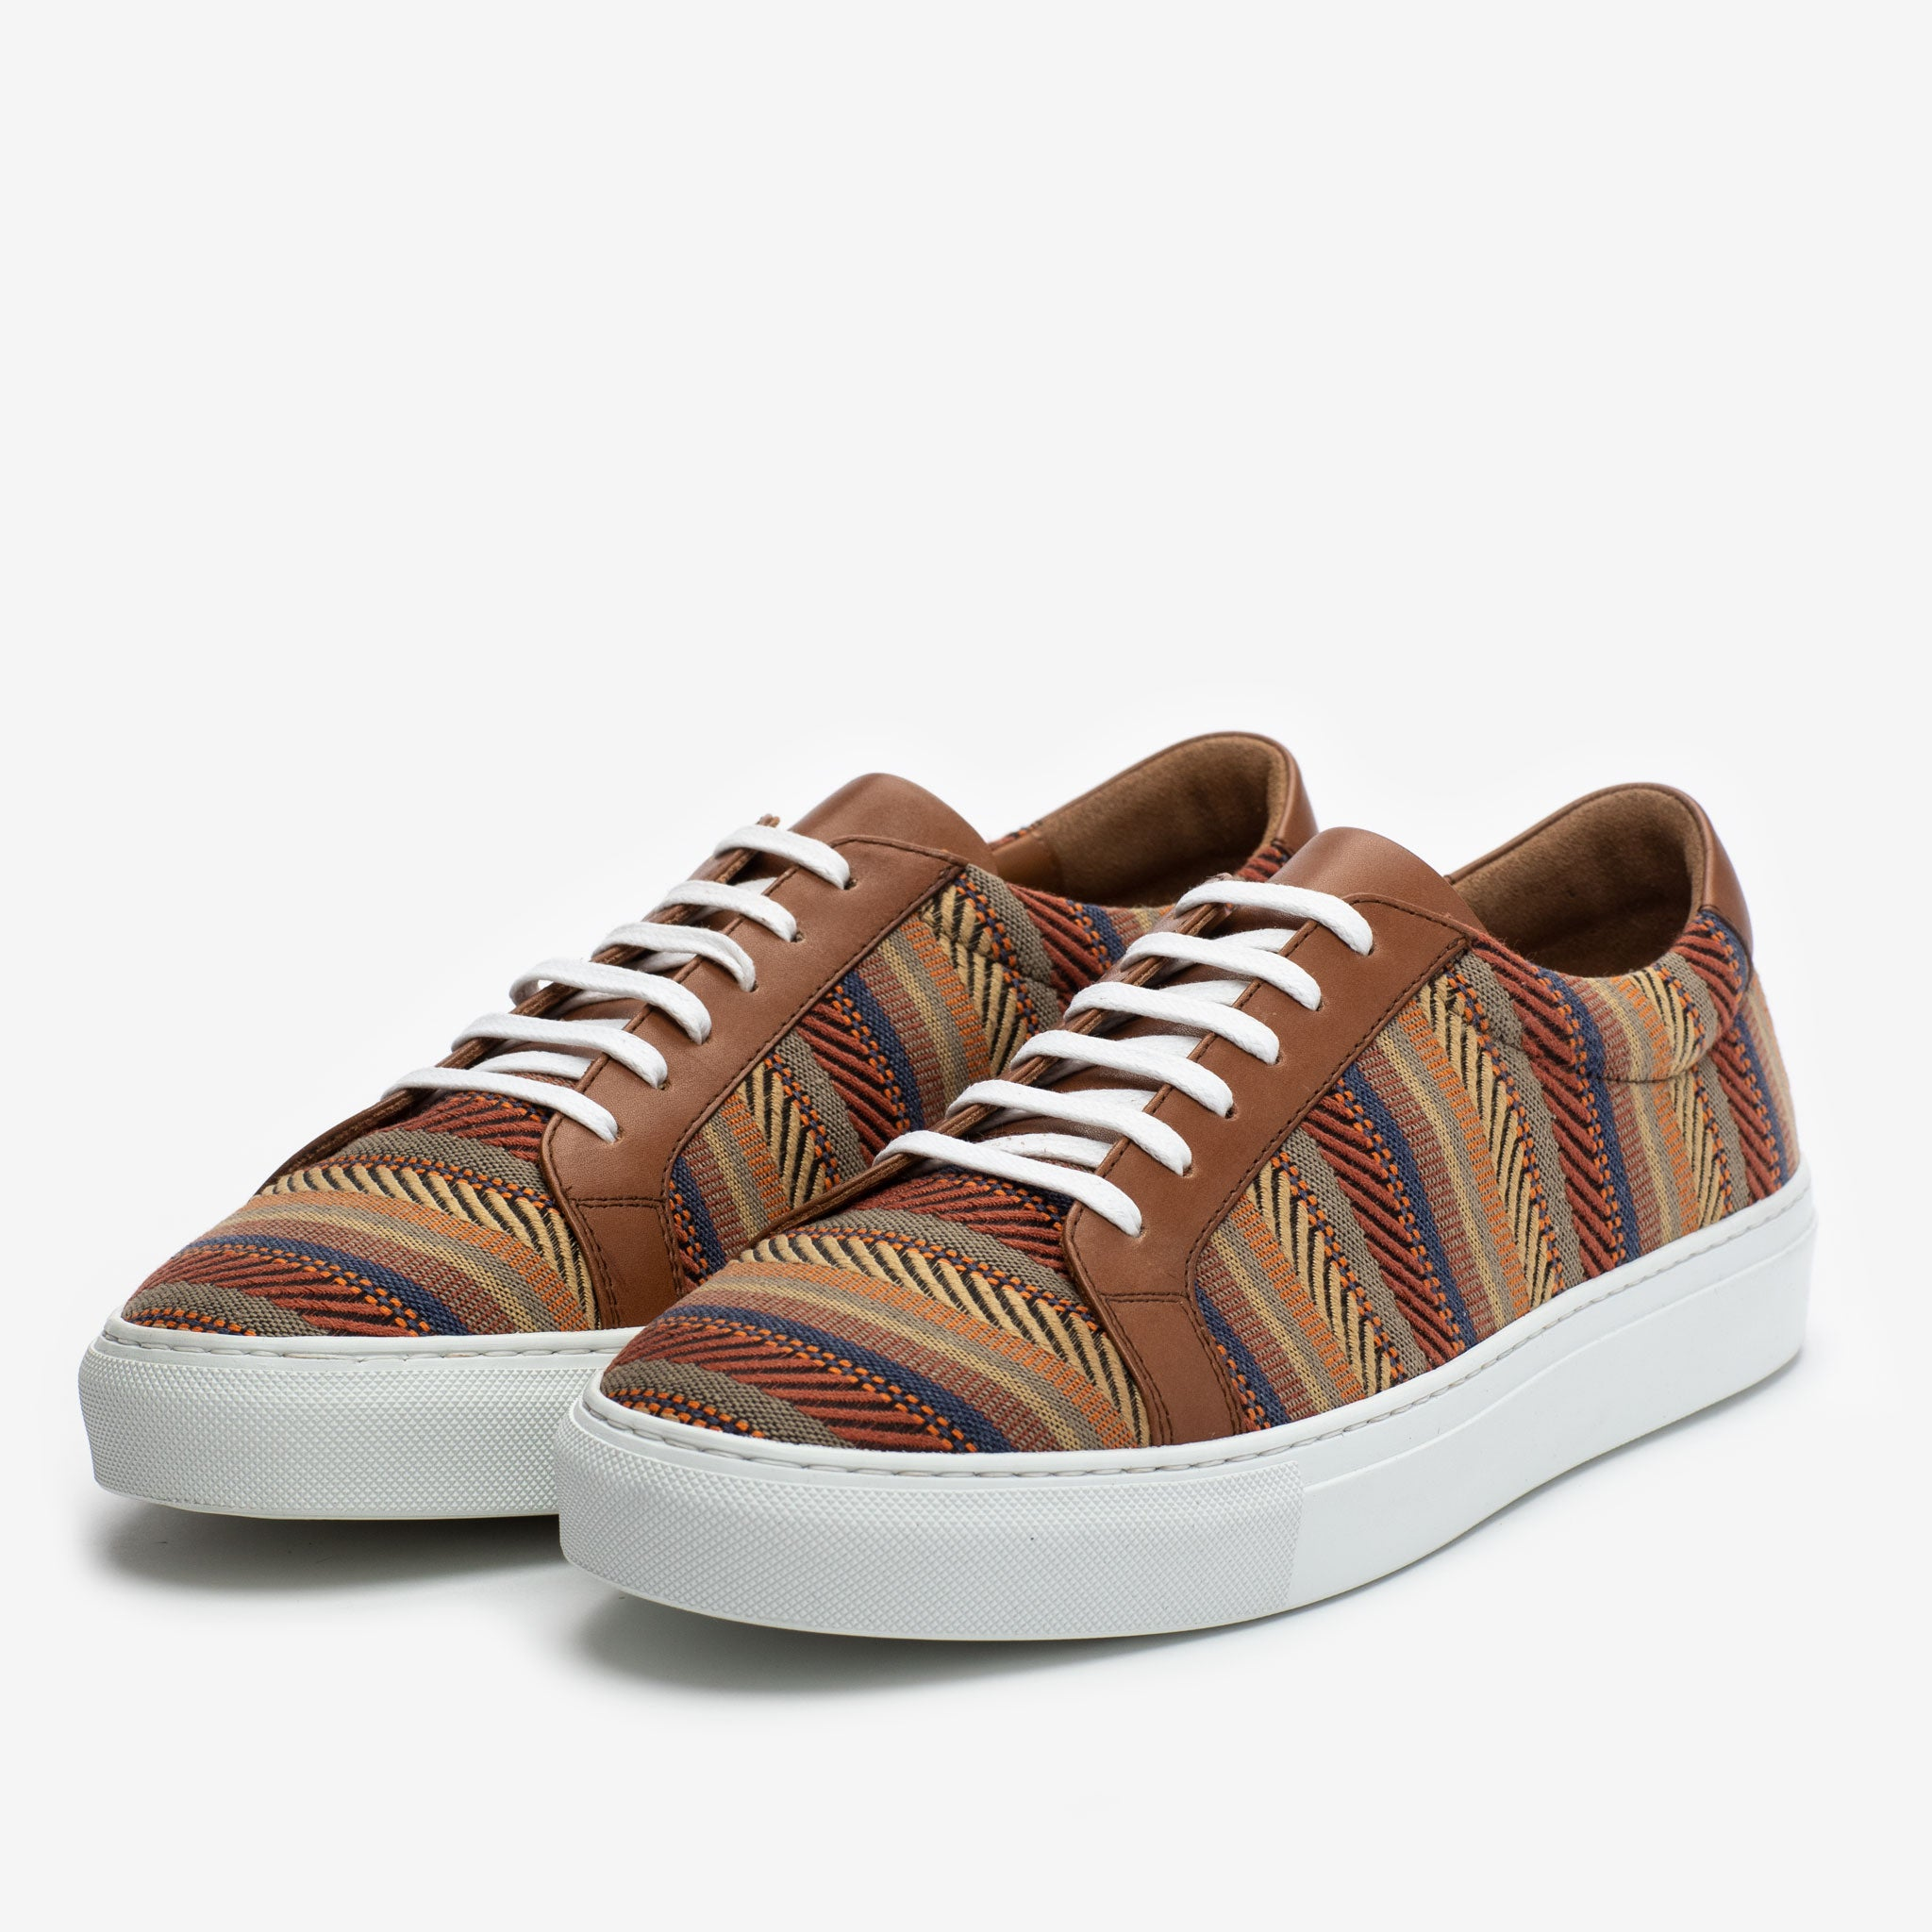 The Sneaker in Sienna Stripes side view